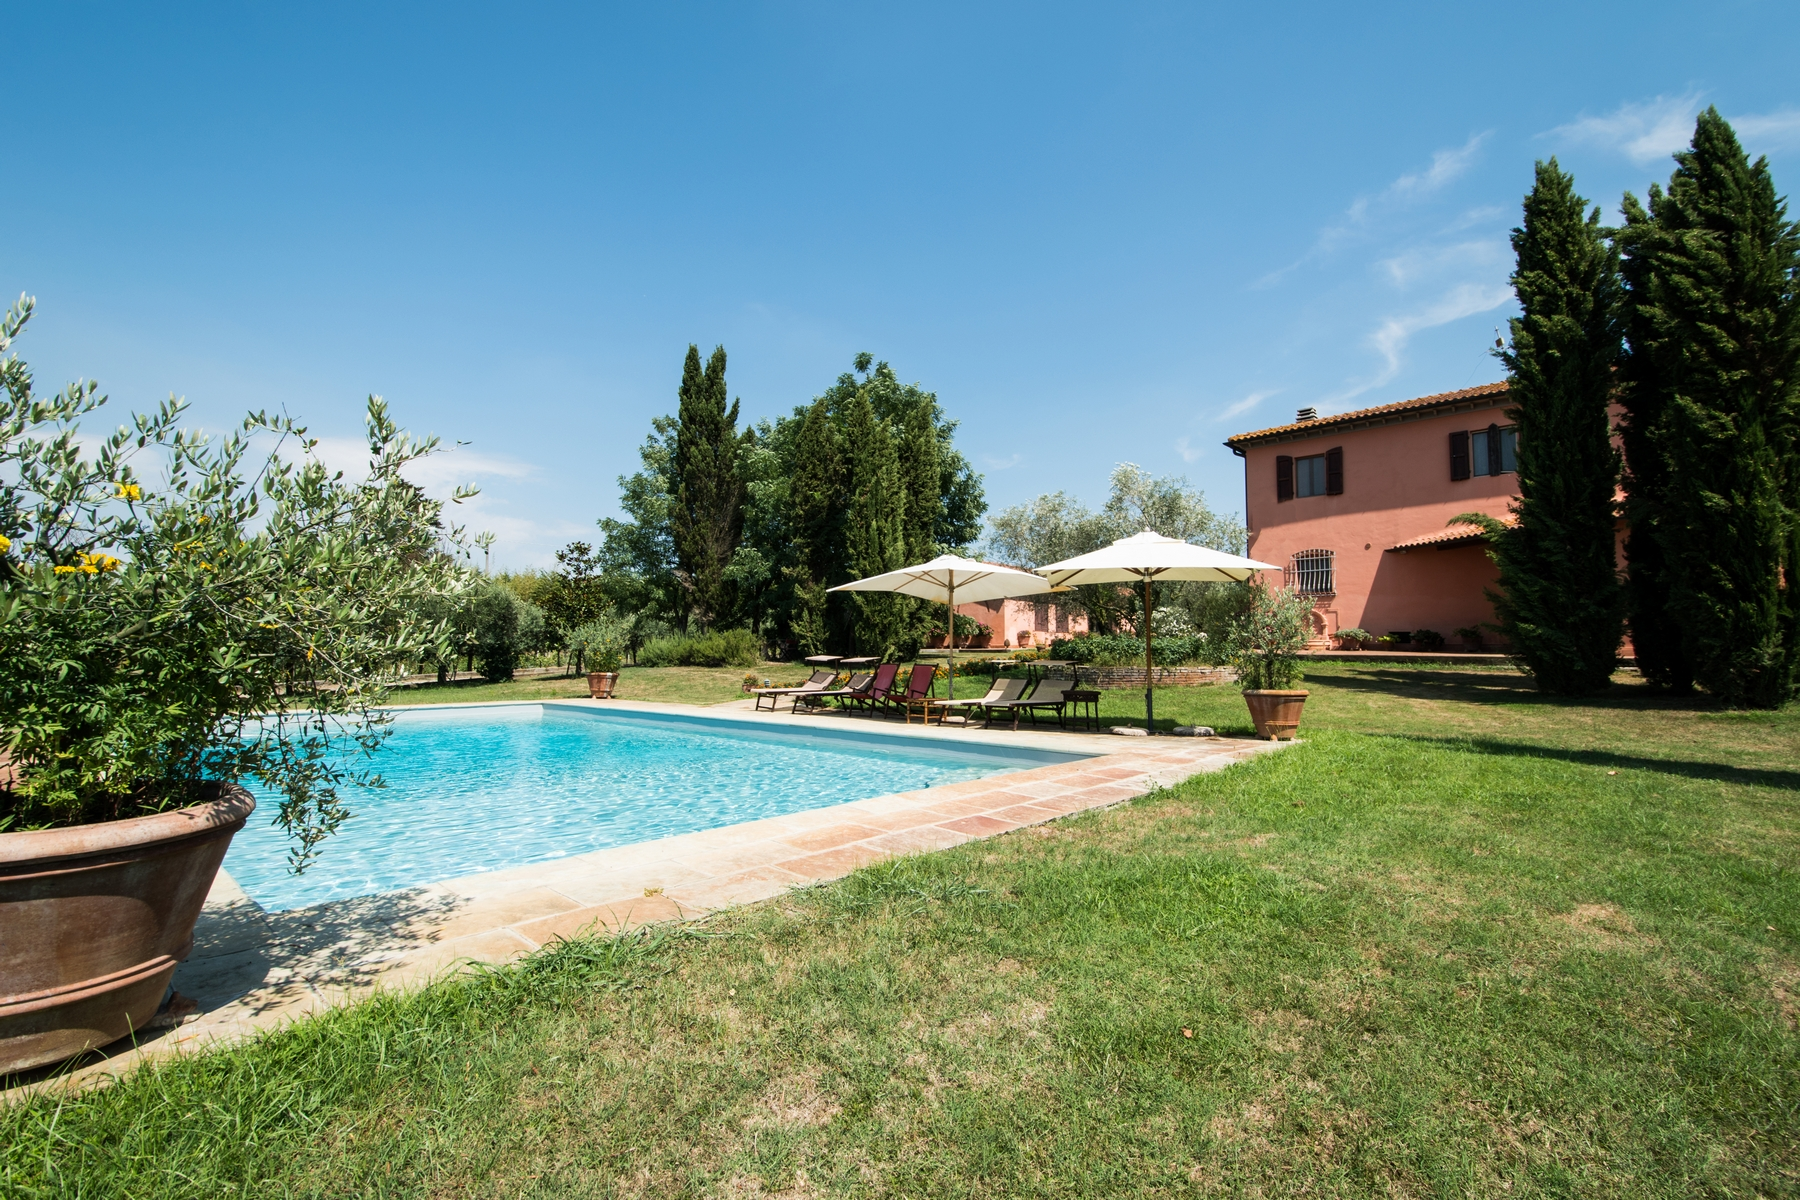 Charming country home near Pisa